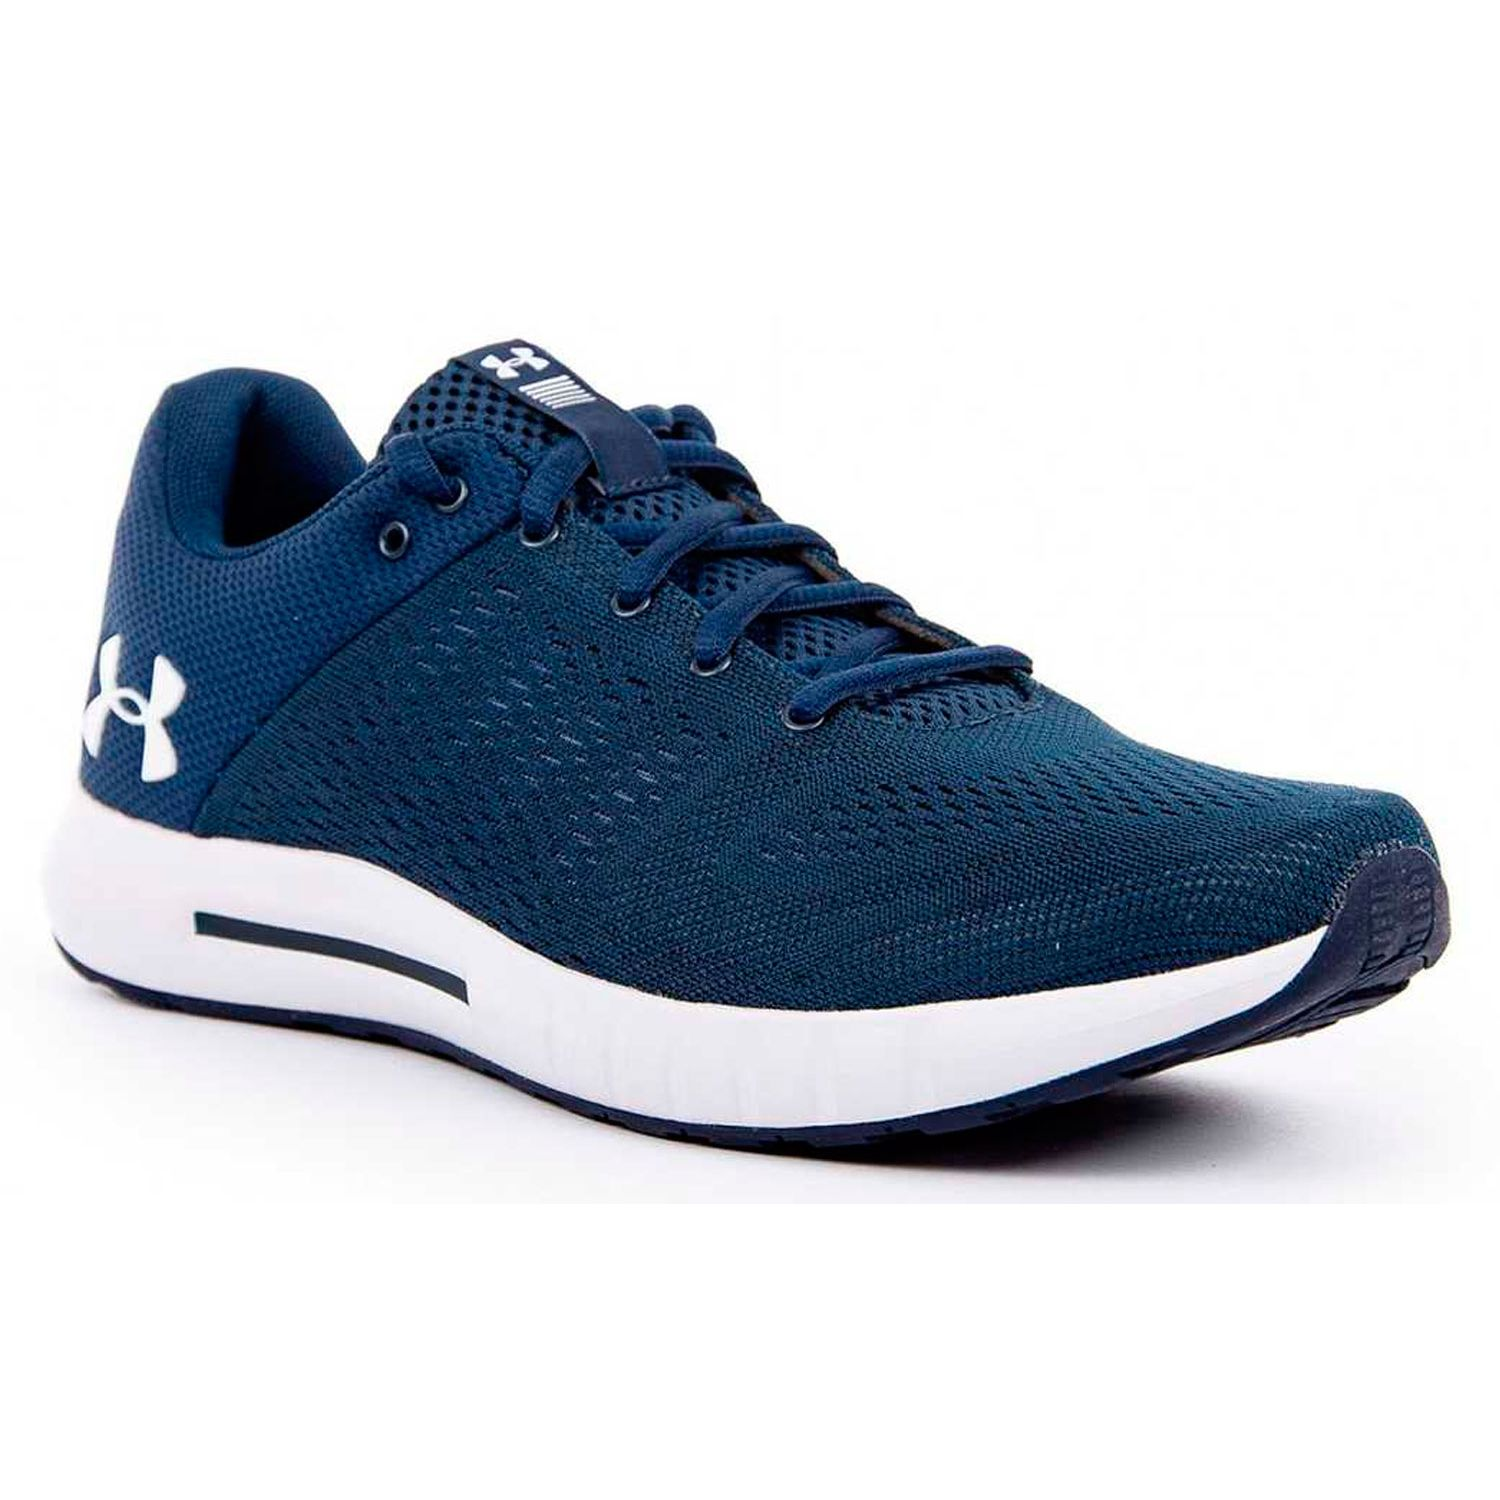 Under Armour ua micro g pursuit-nvy Azul / blanco Trail Running